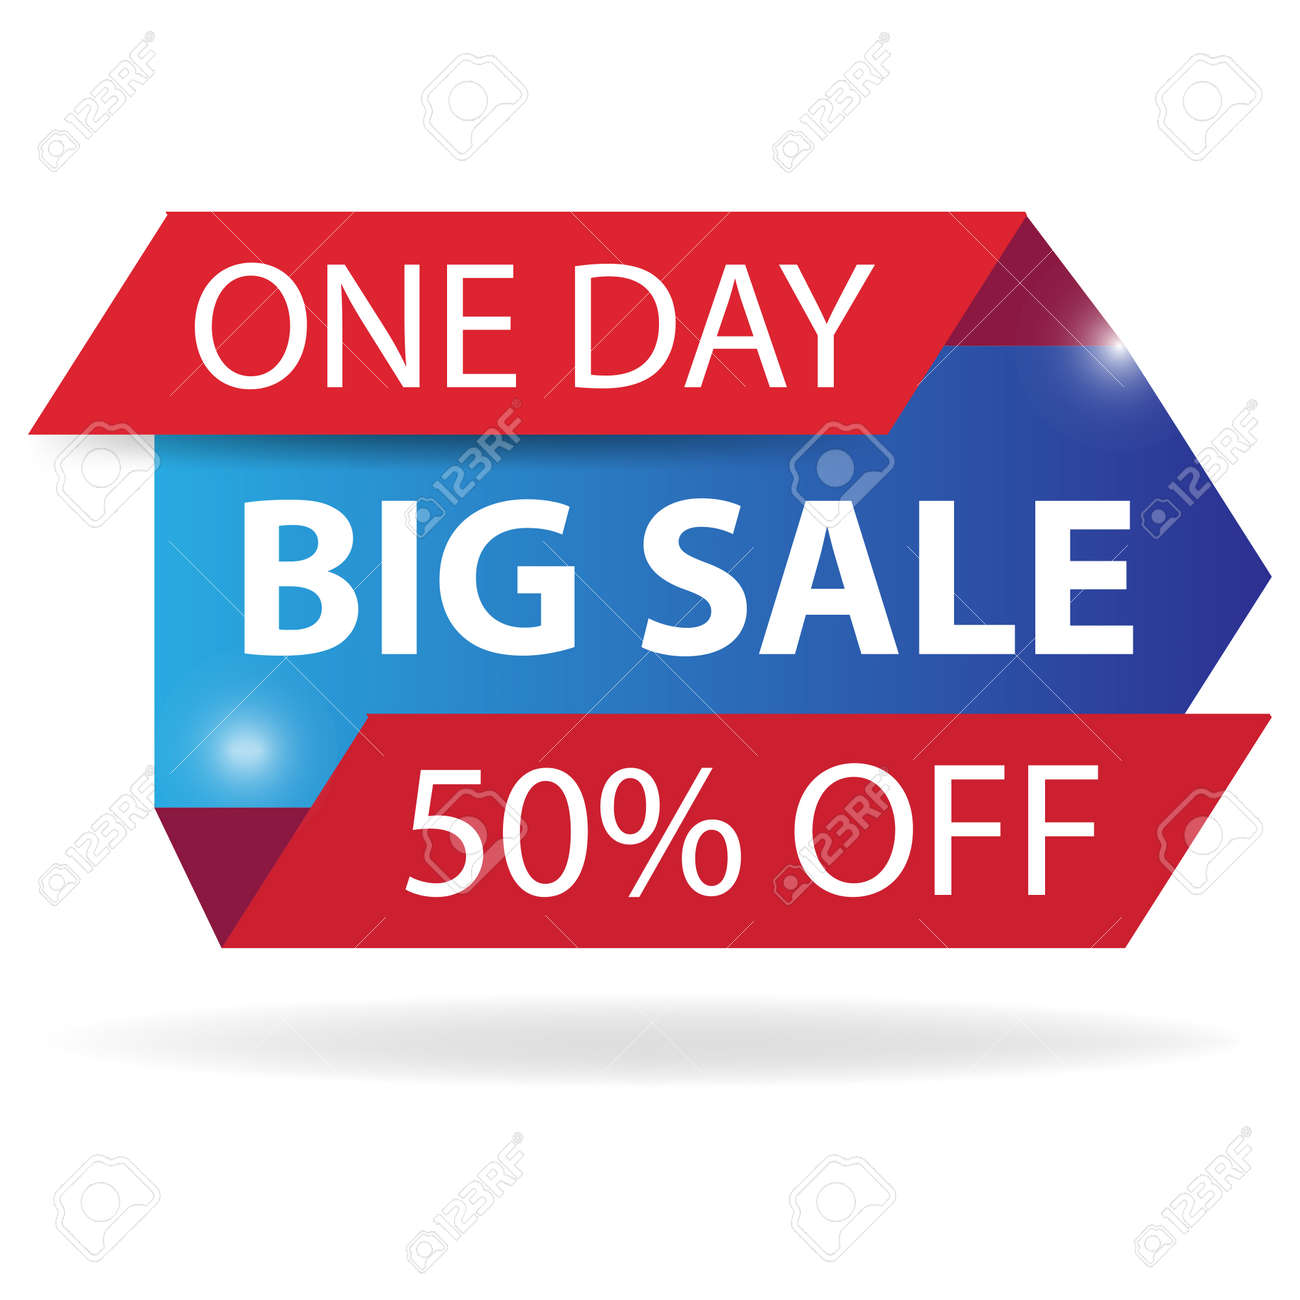 Mega sale banner design template with speed gradient shape isolated on white background. Can be used posters, postcards, headlines, website. - 136244835